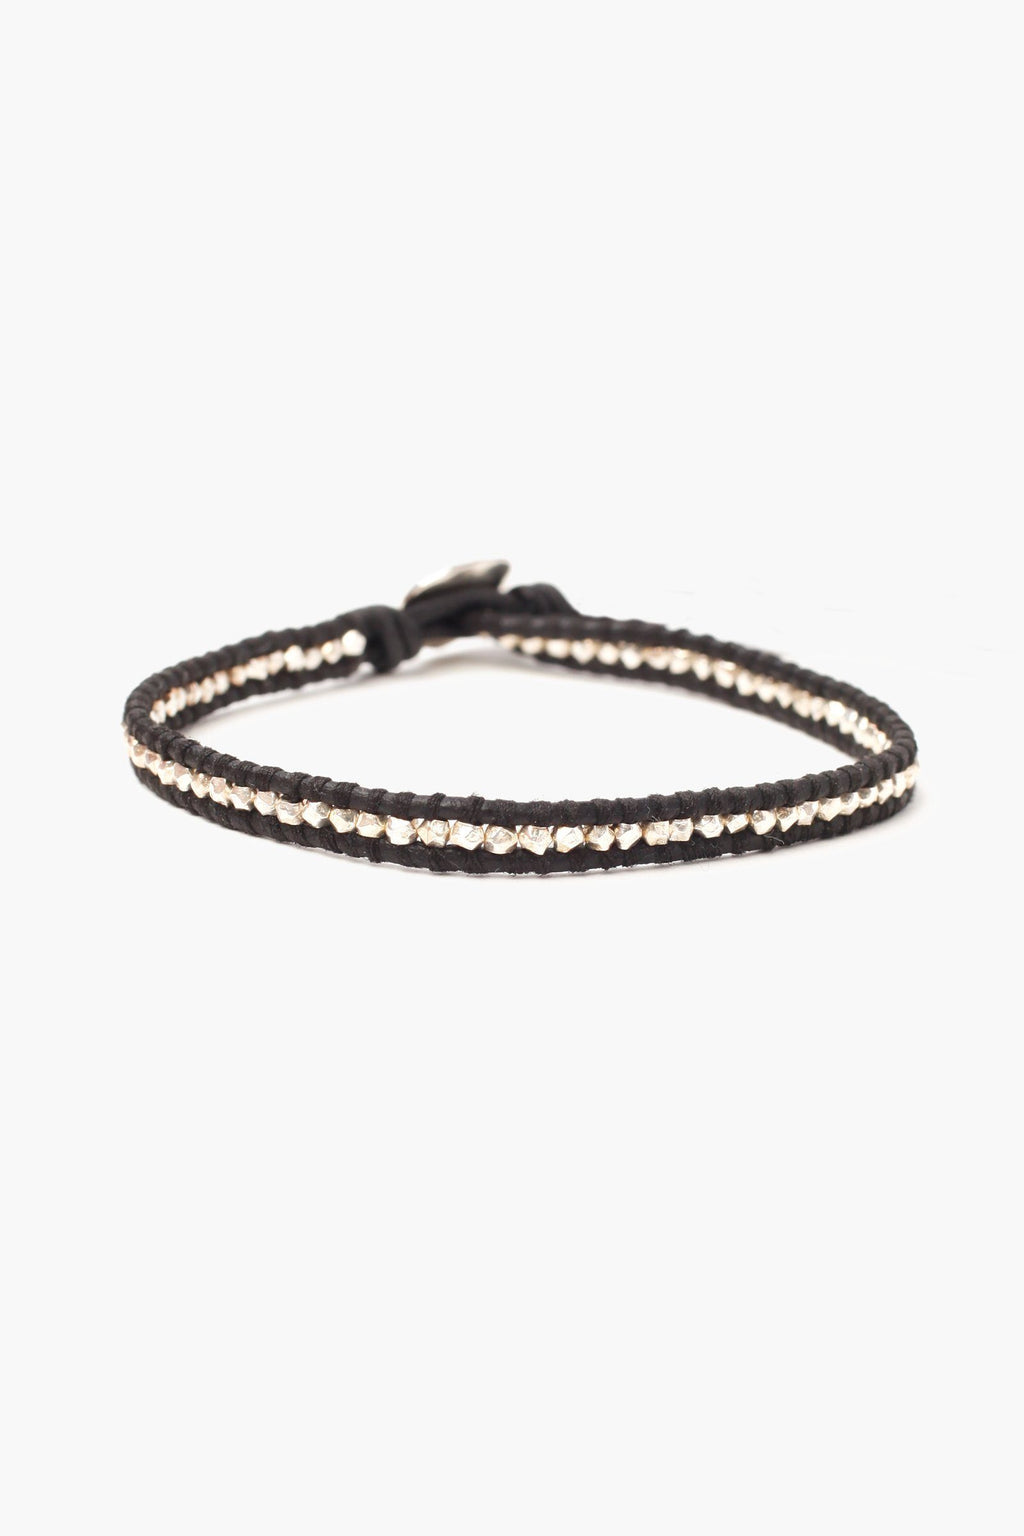 Chan Luu Silver Men's Single Wrap Bracelet